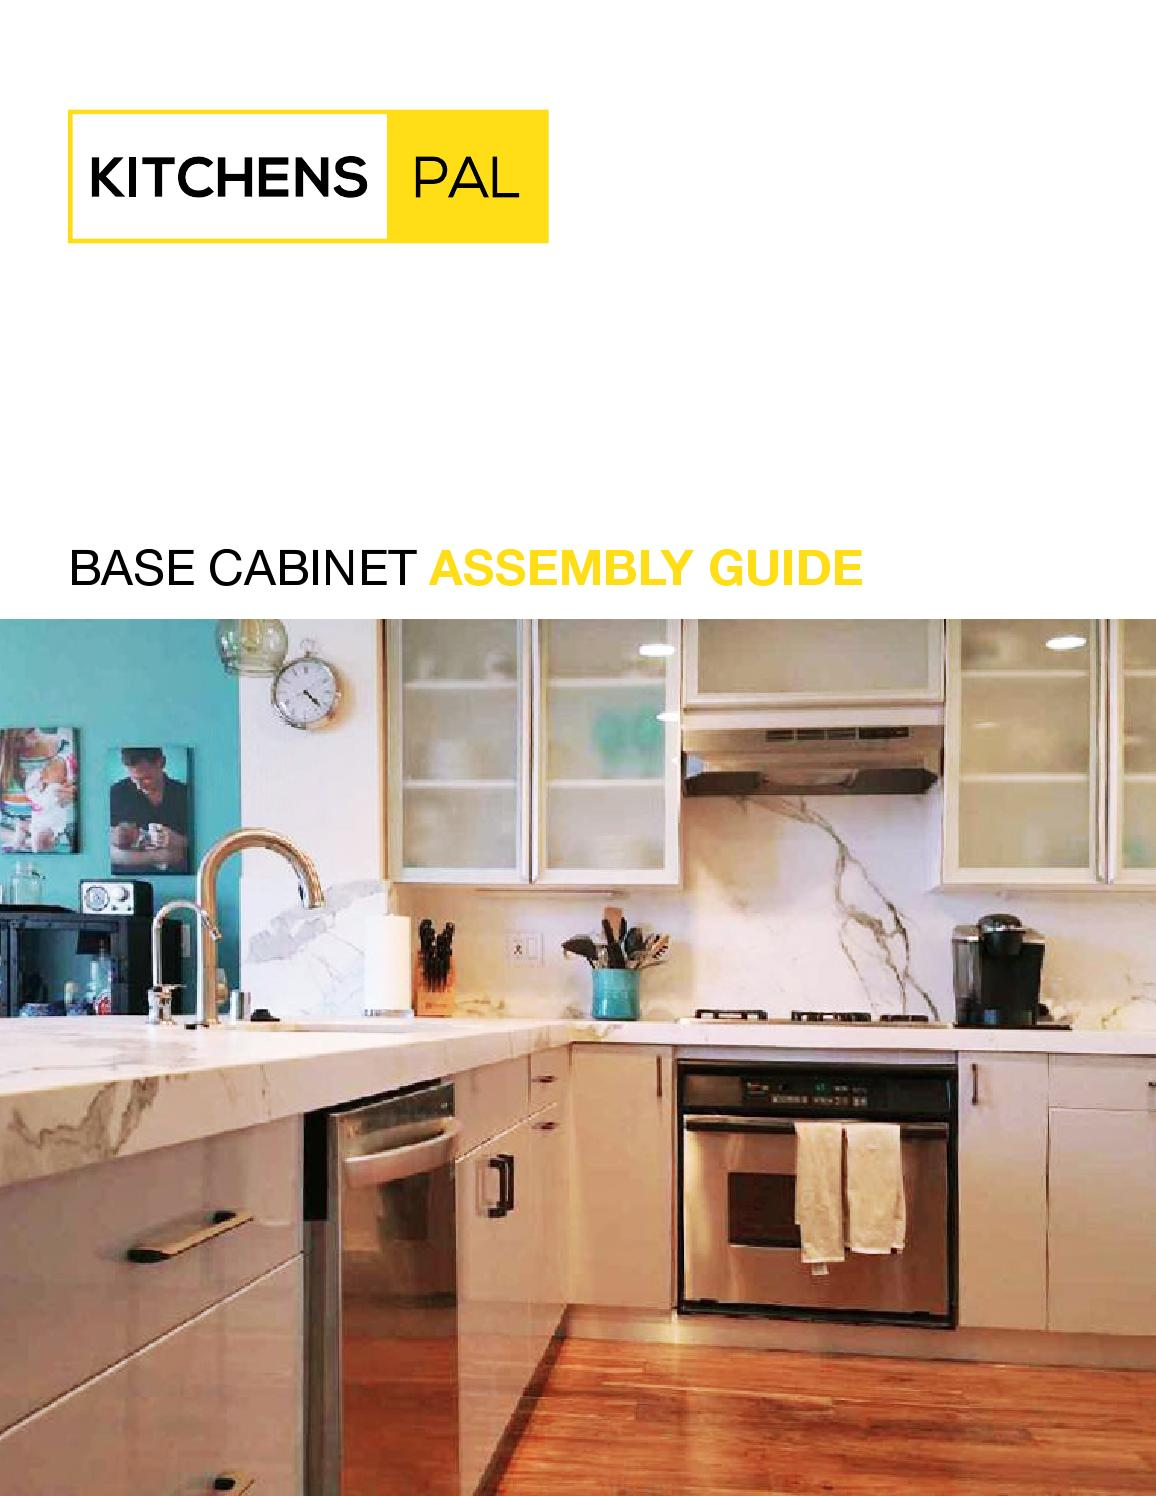 Base Cabinet Assembly Instructions By Kitchens Pal Issuu